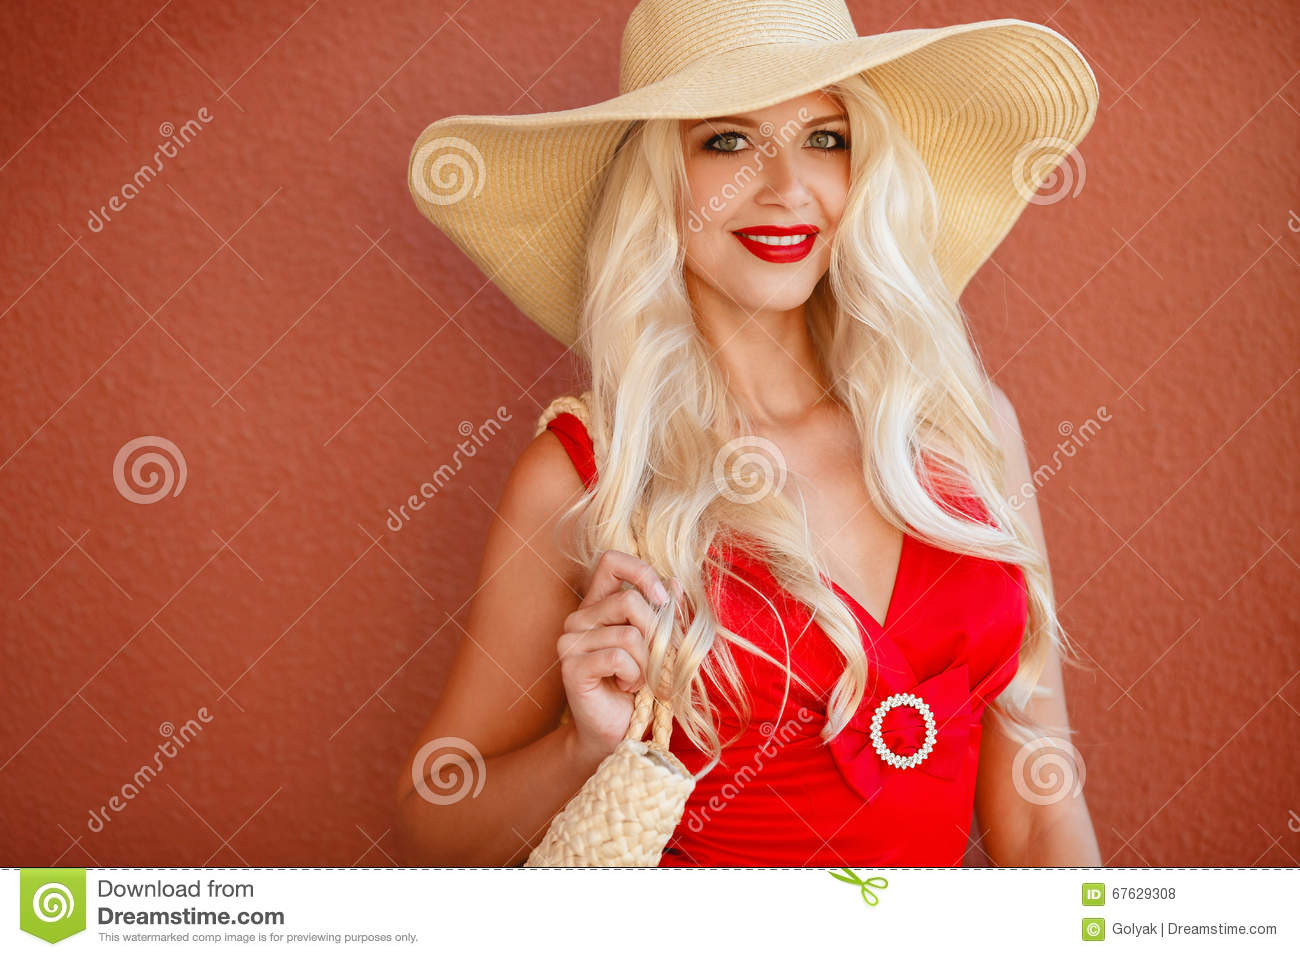 Beautiful woman in straw hat with large brim